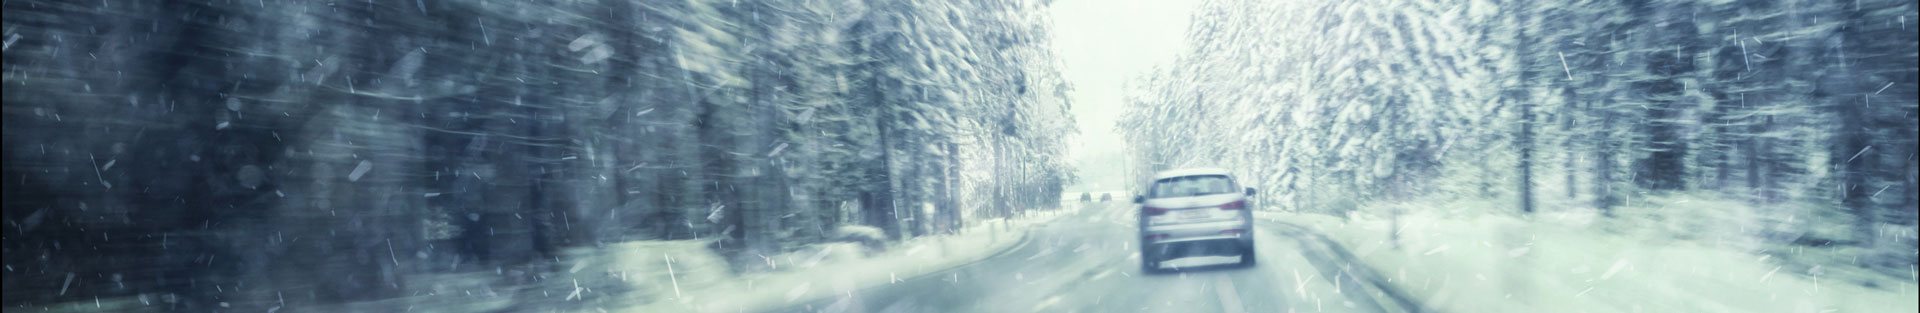 winter driving image for personal injury case